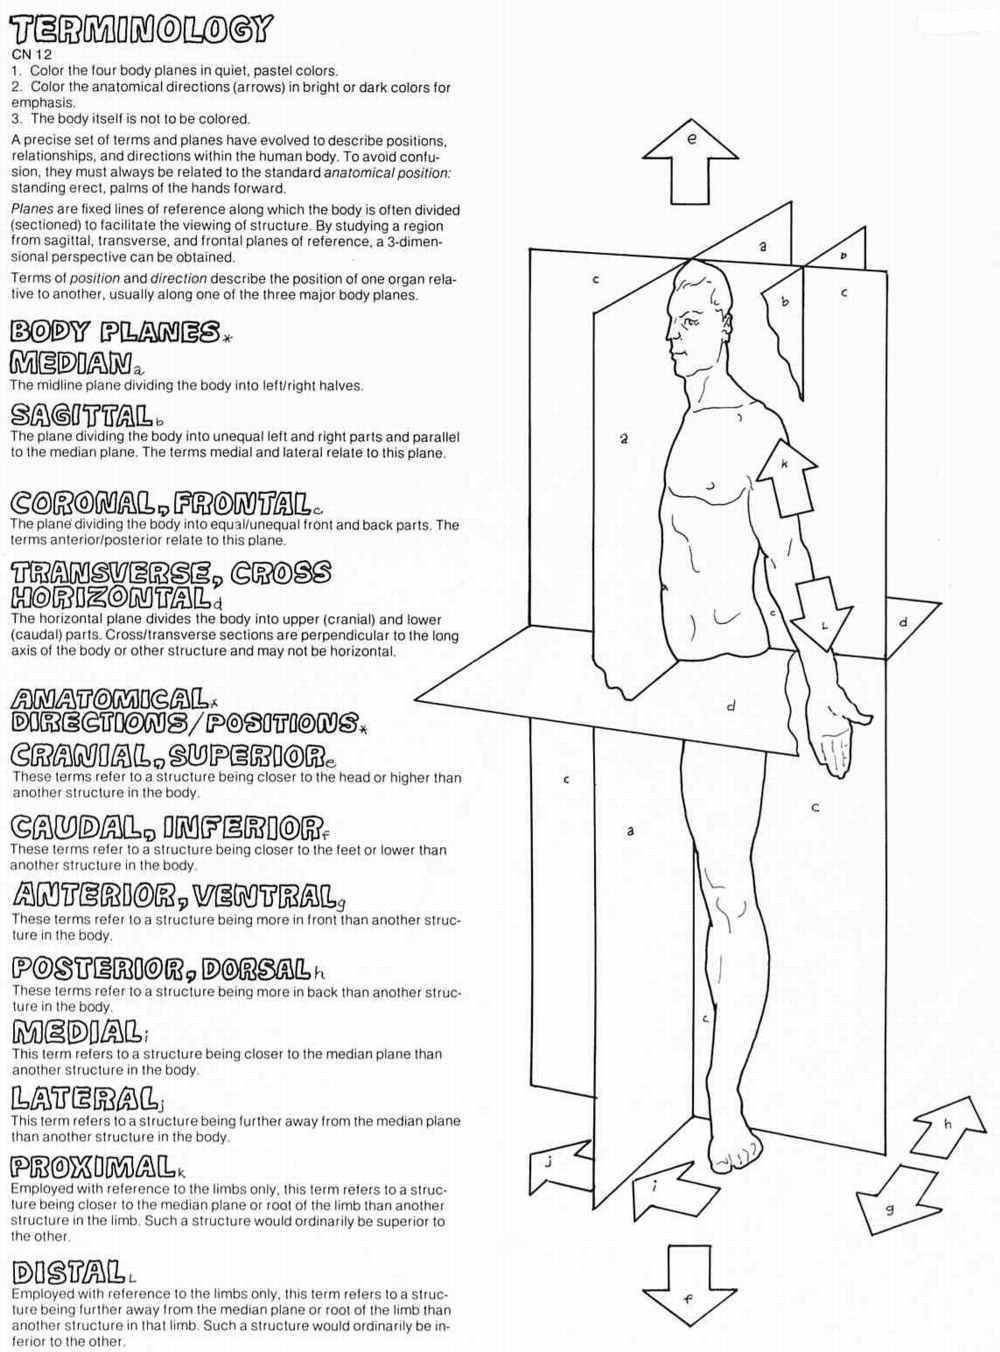 Anatomical Directional Terms of the Body | health | Pinterest